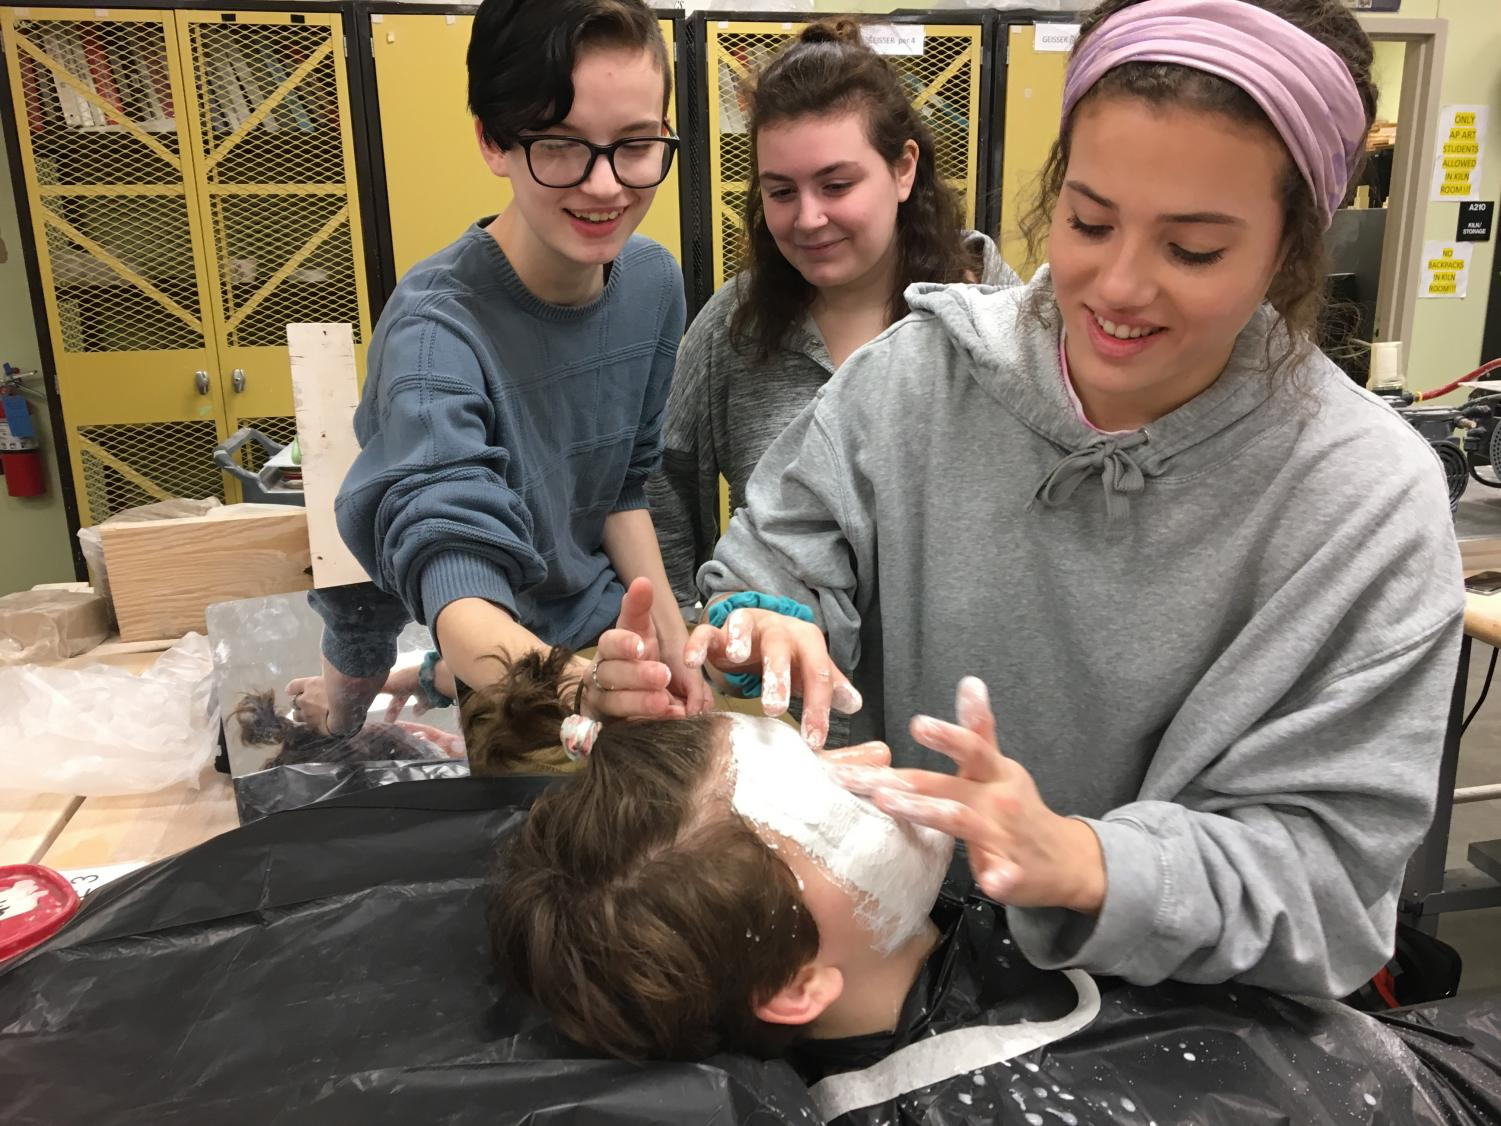 Mary Britton applies face casting to Natalie Roth with help from Kara Roth and Addison Clum.